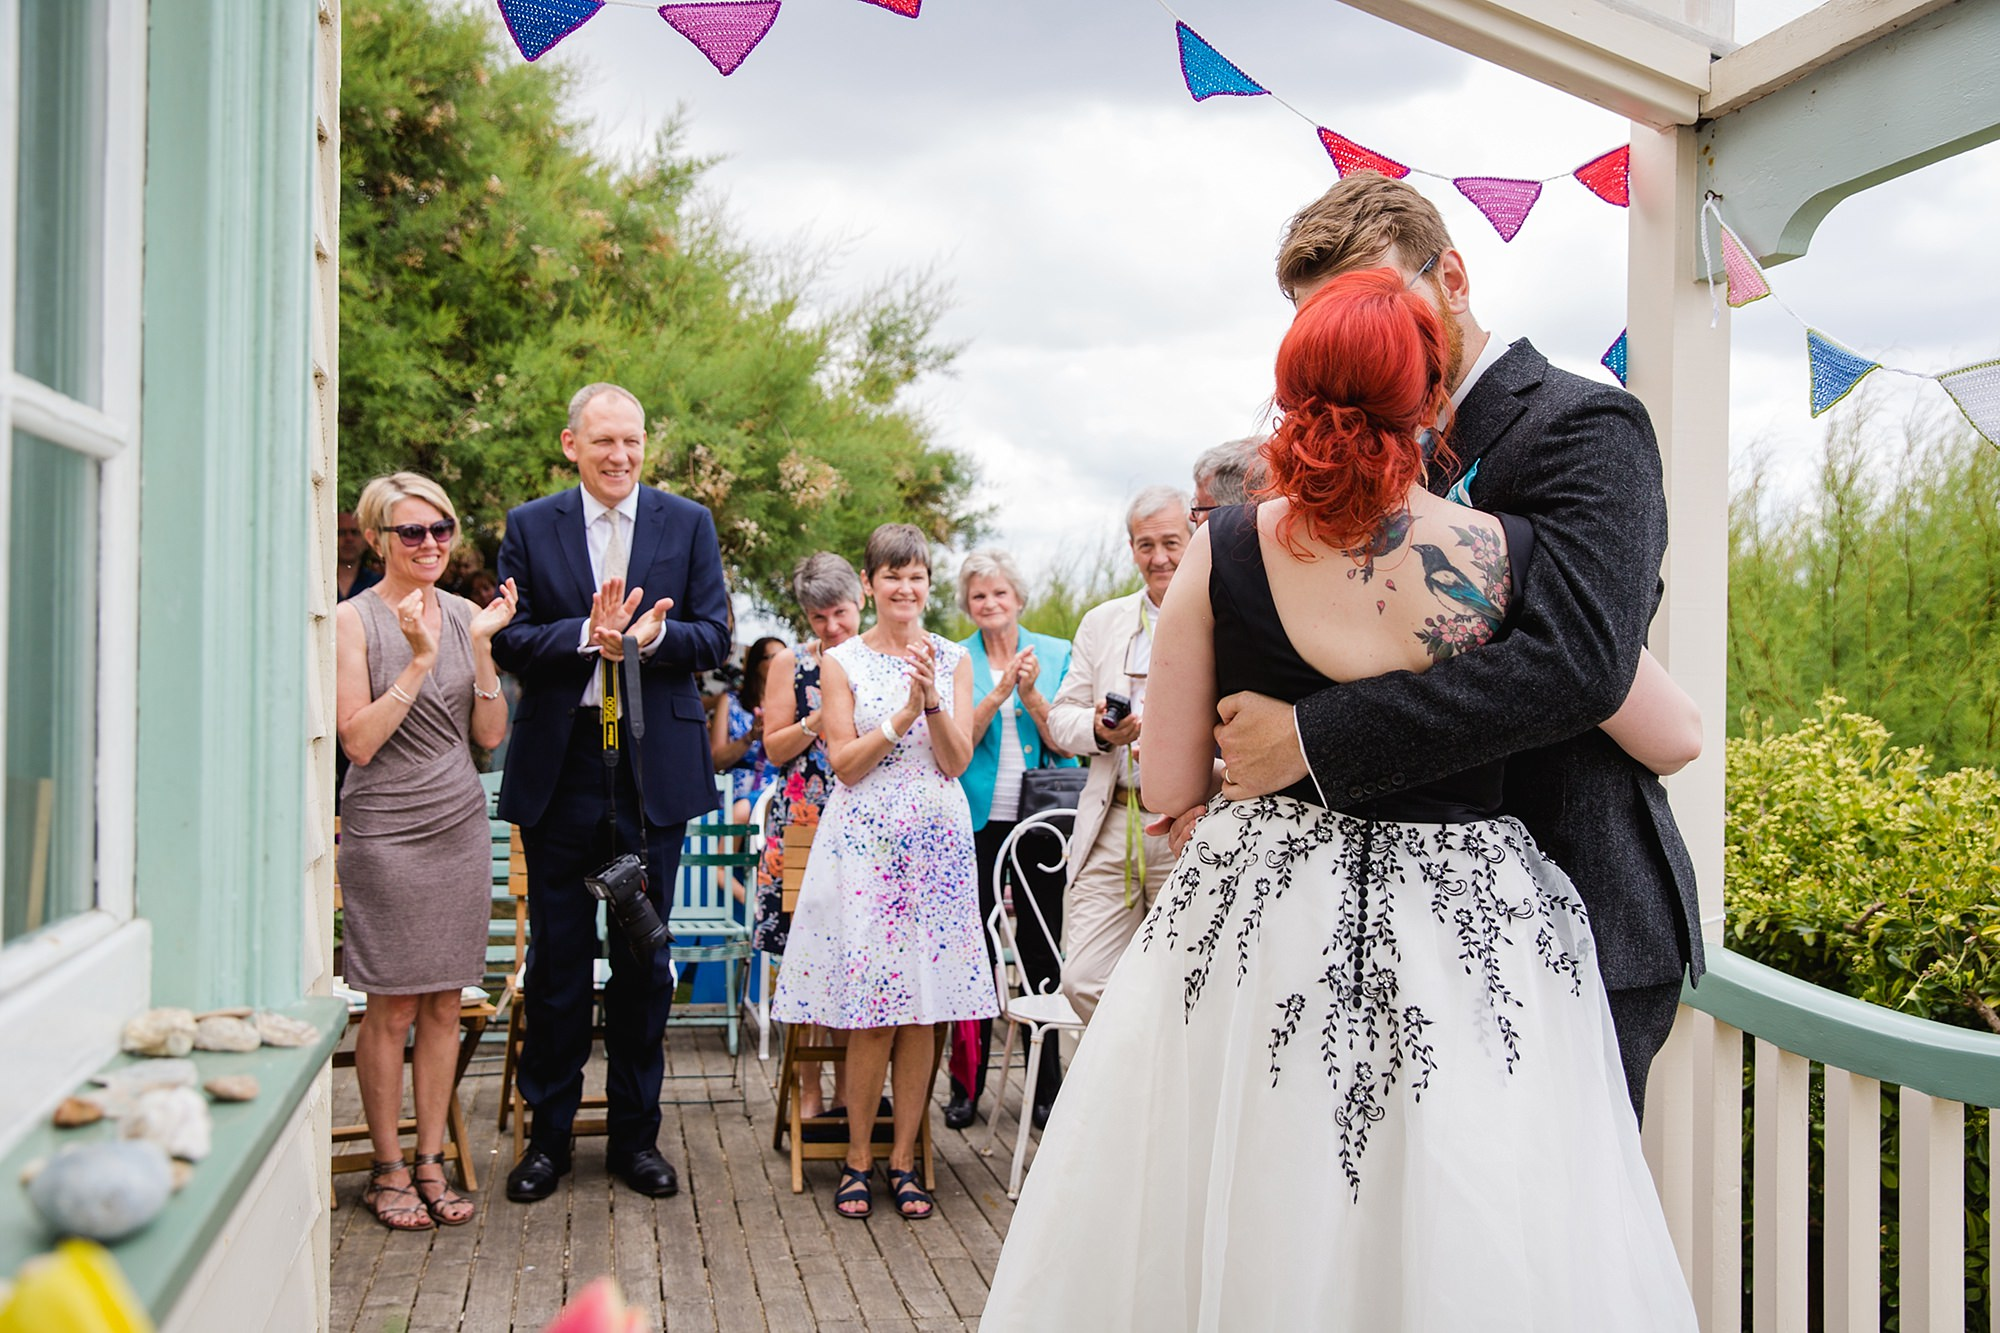 Beacon House wedding bride and groom kiss as guests clap